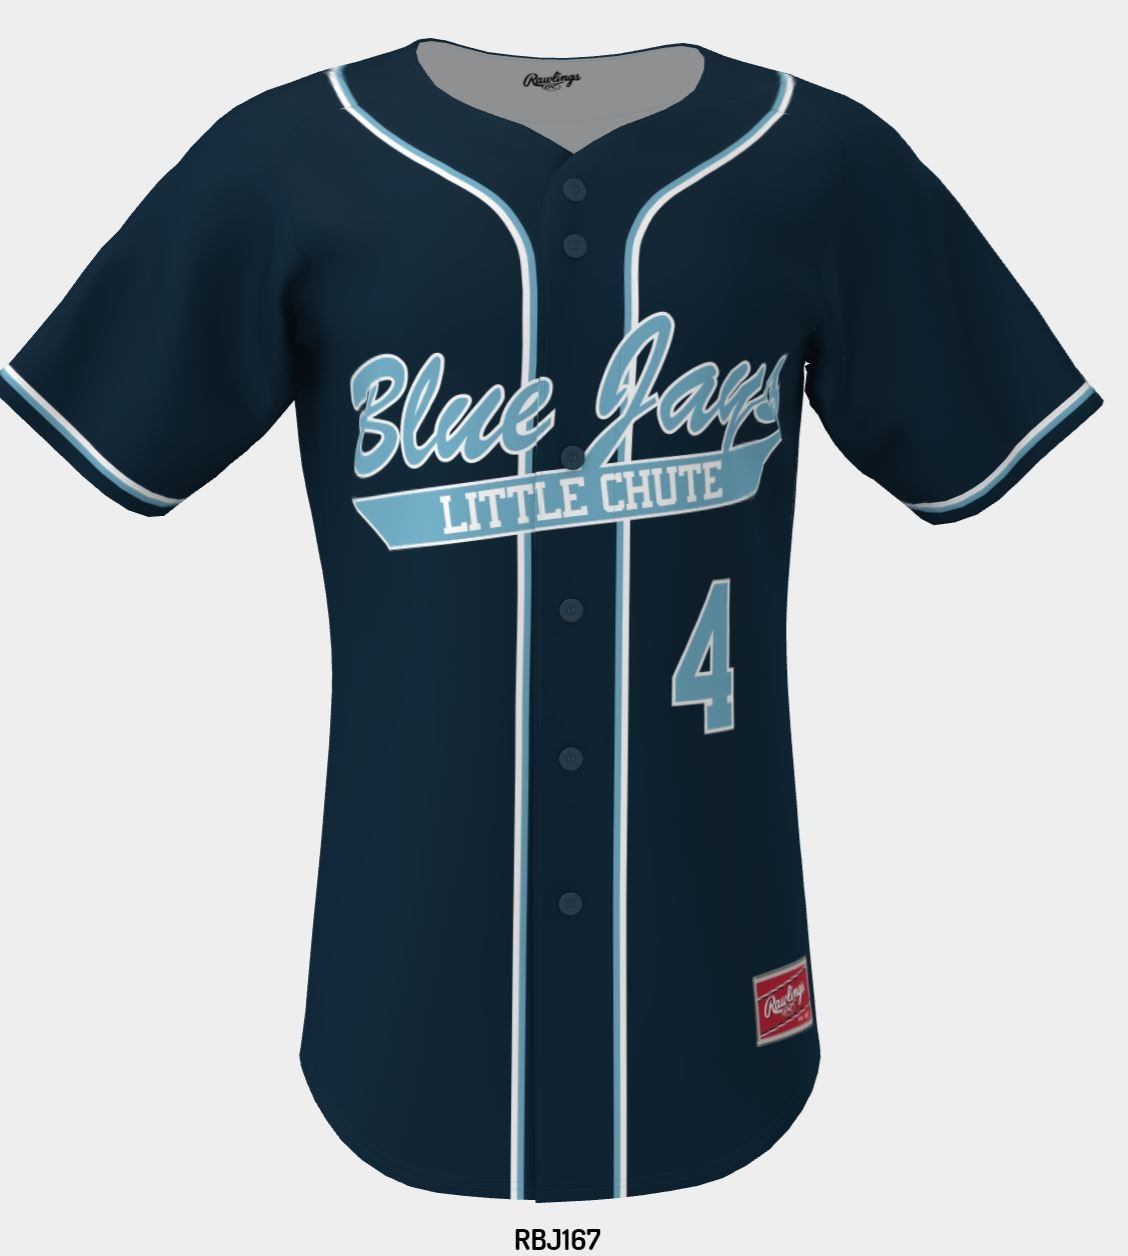 Little Chute Blue Jays New Uniforms